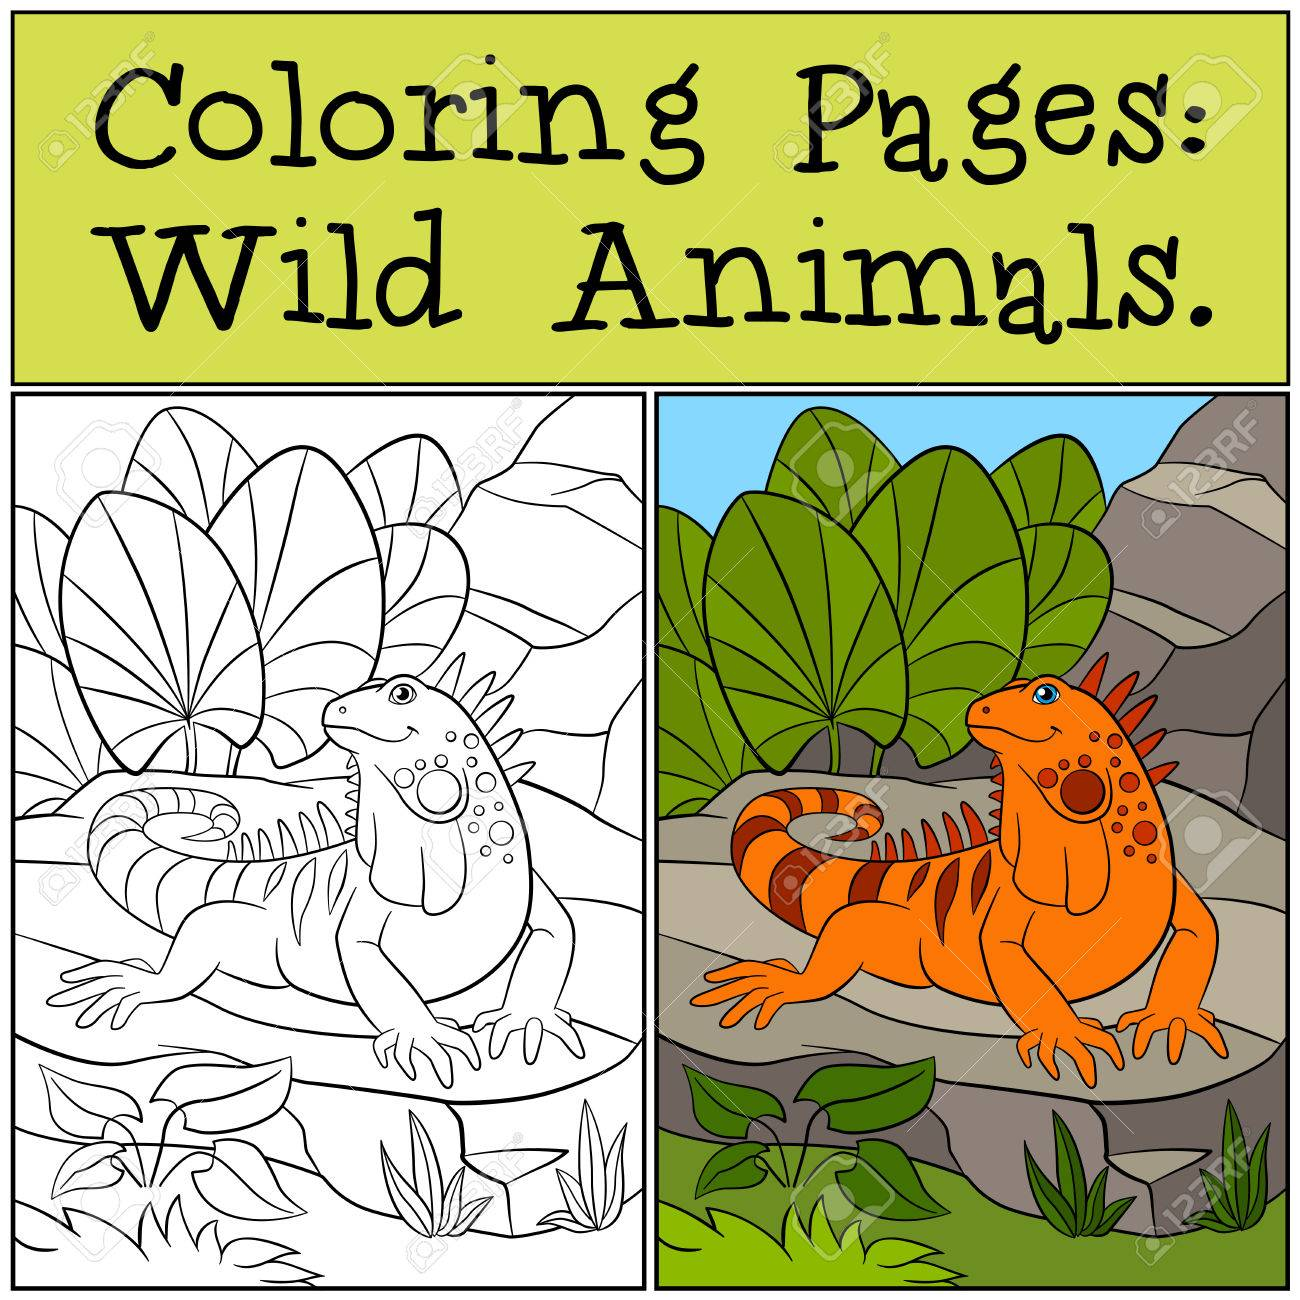 Coloring Pages: Wild Animals. Cute Orange Iguana Sits On The ...